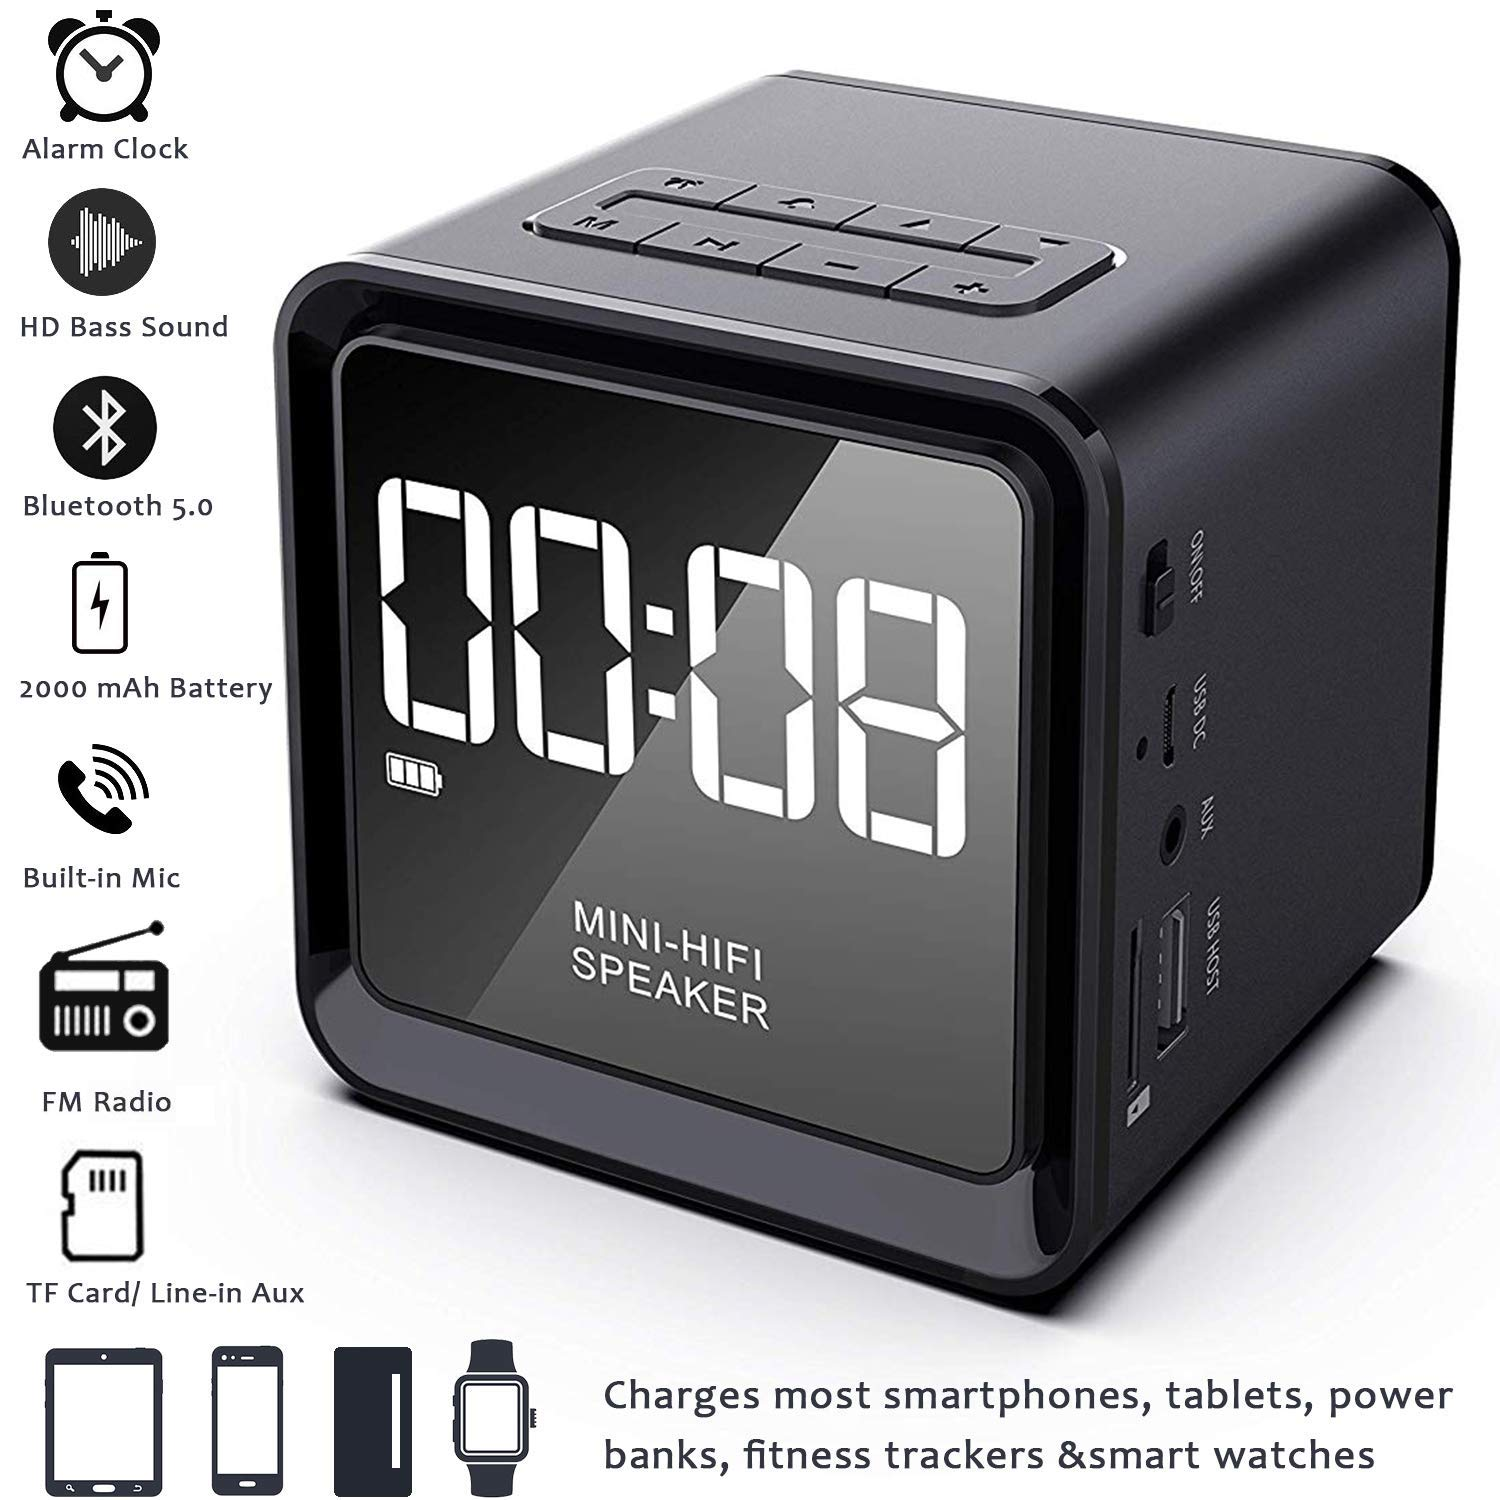 2019 UPGRADE Digital Alarm Clock Radio with Wireless Bluetooth Speaker for Bedrooms/Office, Micro SD, Built-in Mic, 33ft Range, 4-8 Hrs/2000 mA ...